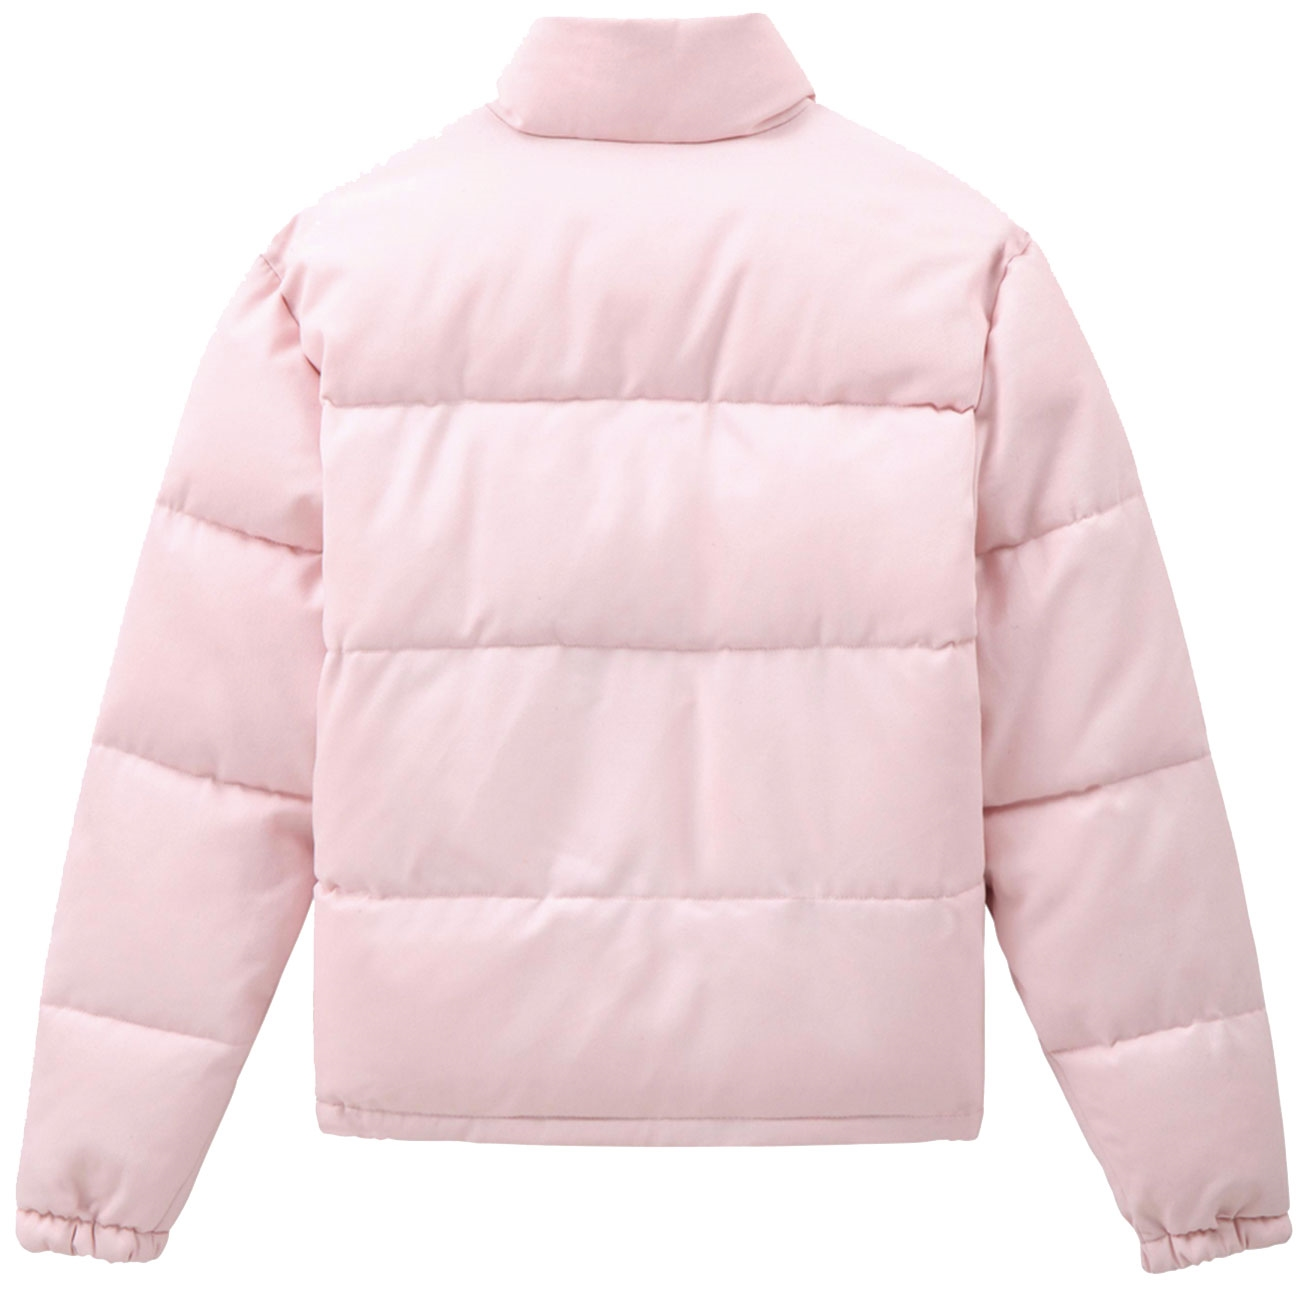 dickies-jakke-jacket-vinter-winter-light-lys-pink